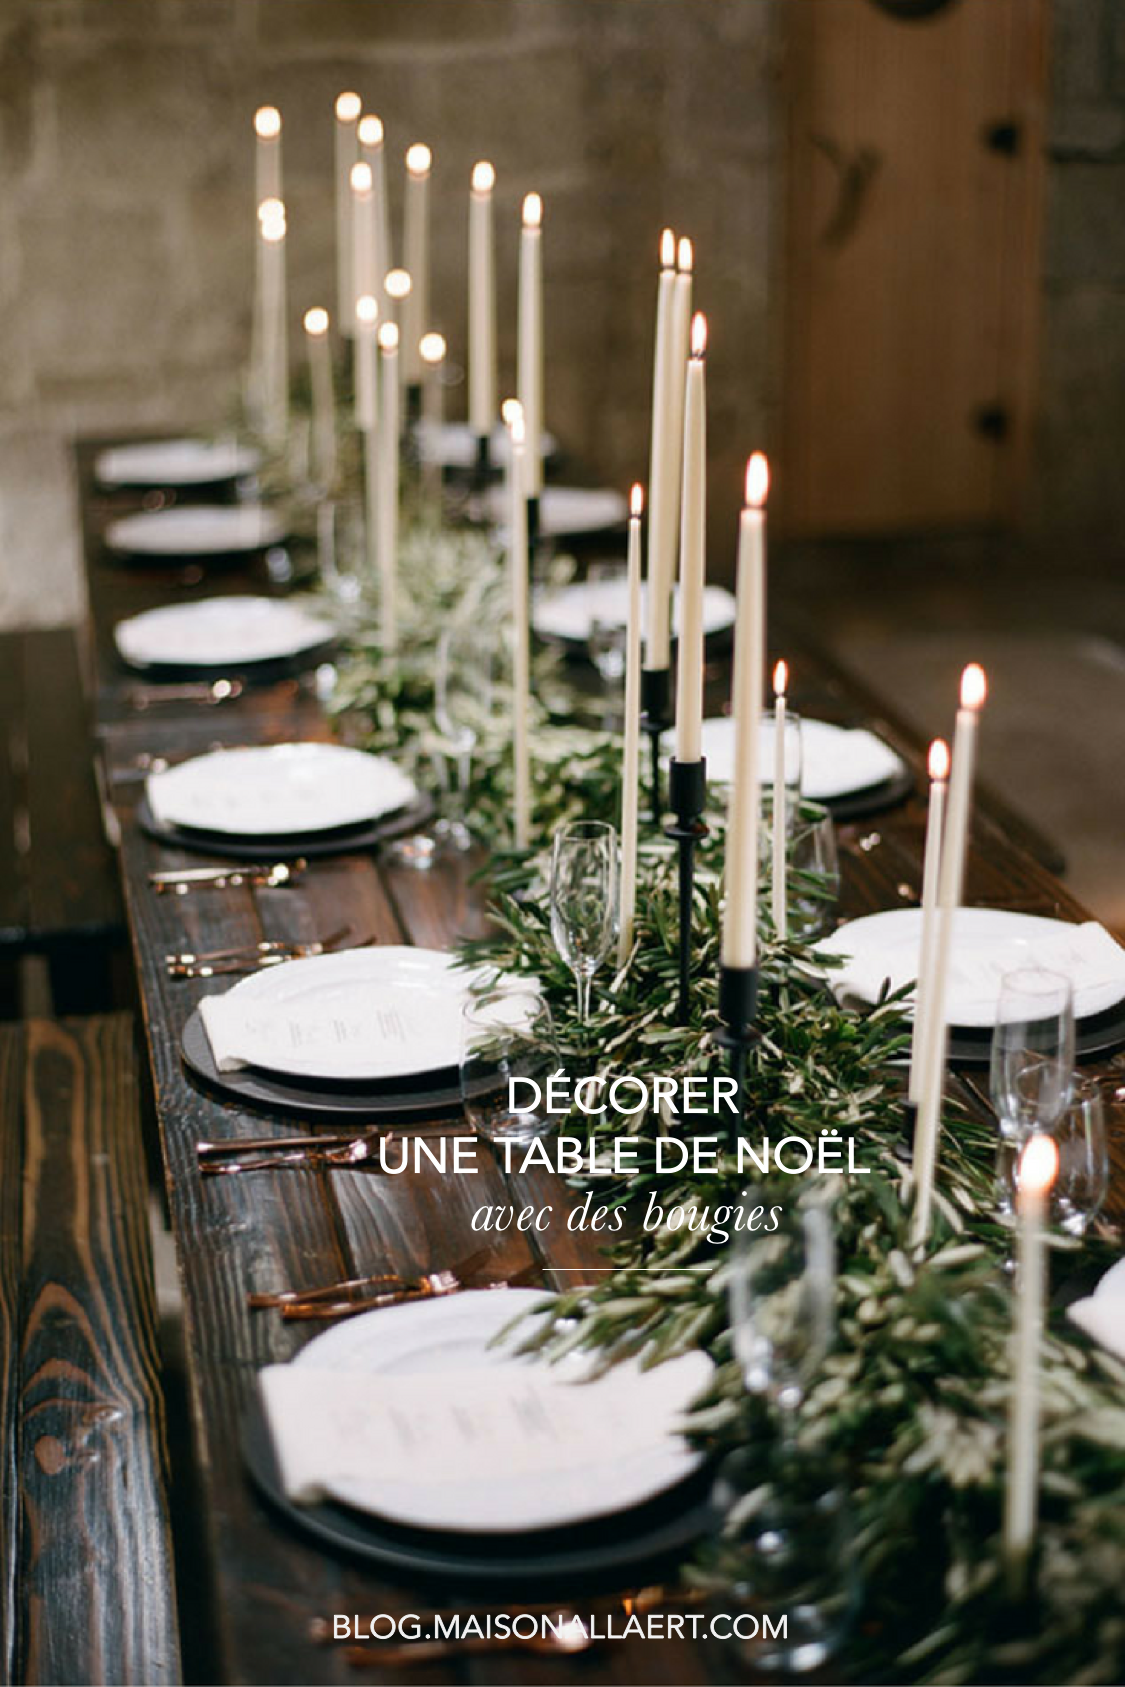 Comment d corer une table de no l naturelle et originale - Idee de decoration de table pour noel ...